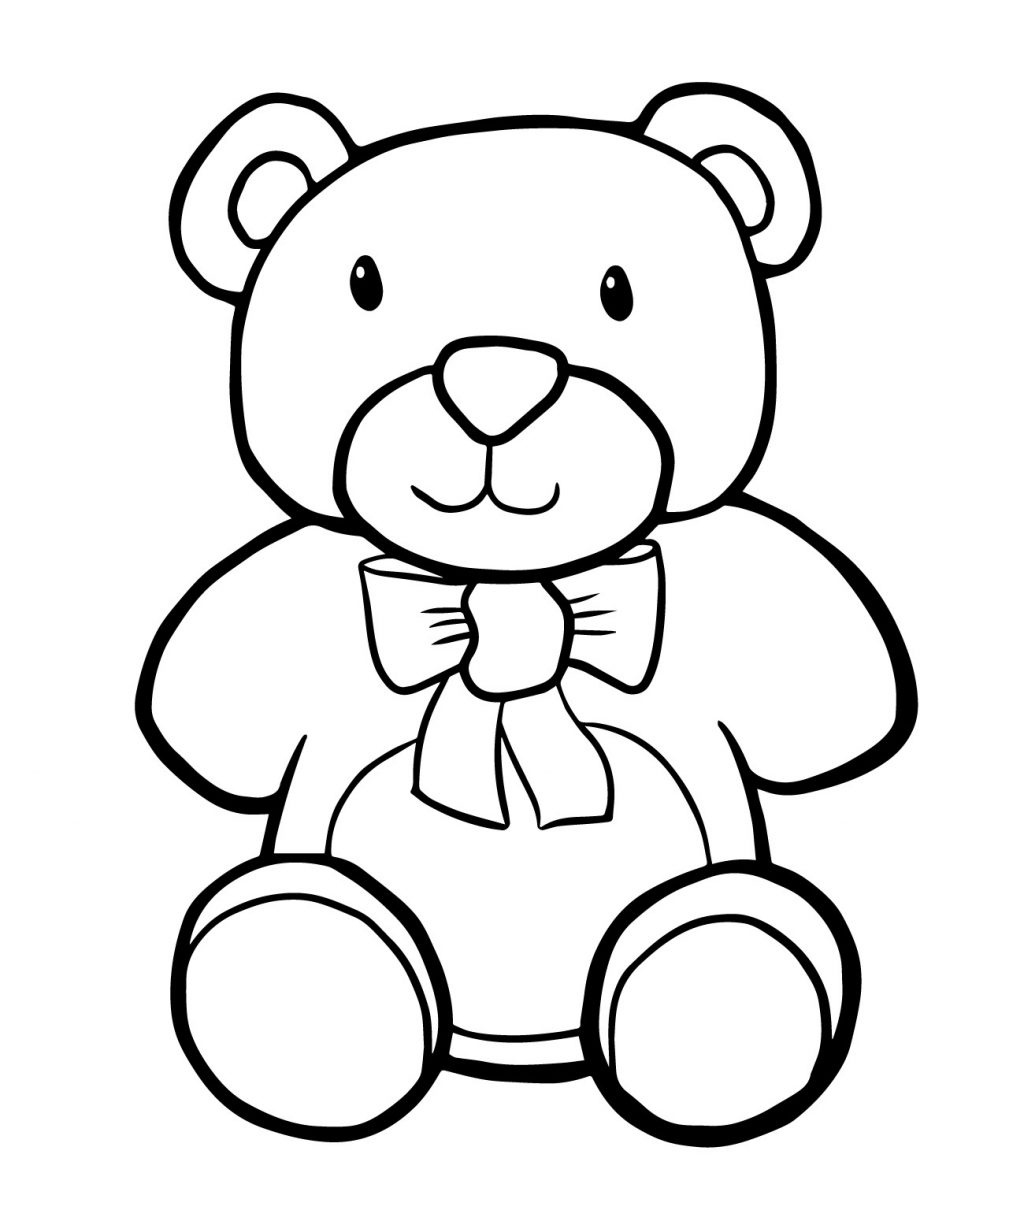 Coloring Ideas : Free Printable Teddy Bear Coloring Pages For Kids - Teddy Bear Coloring Pages Free Printable